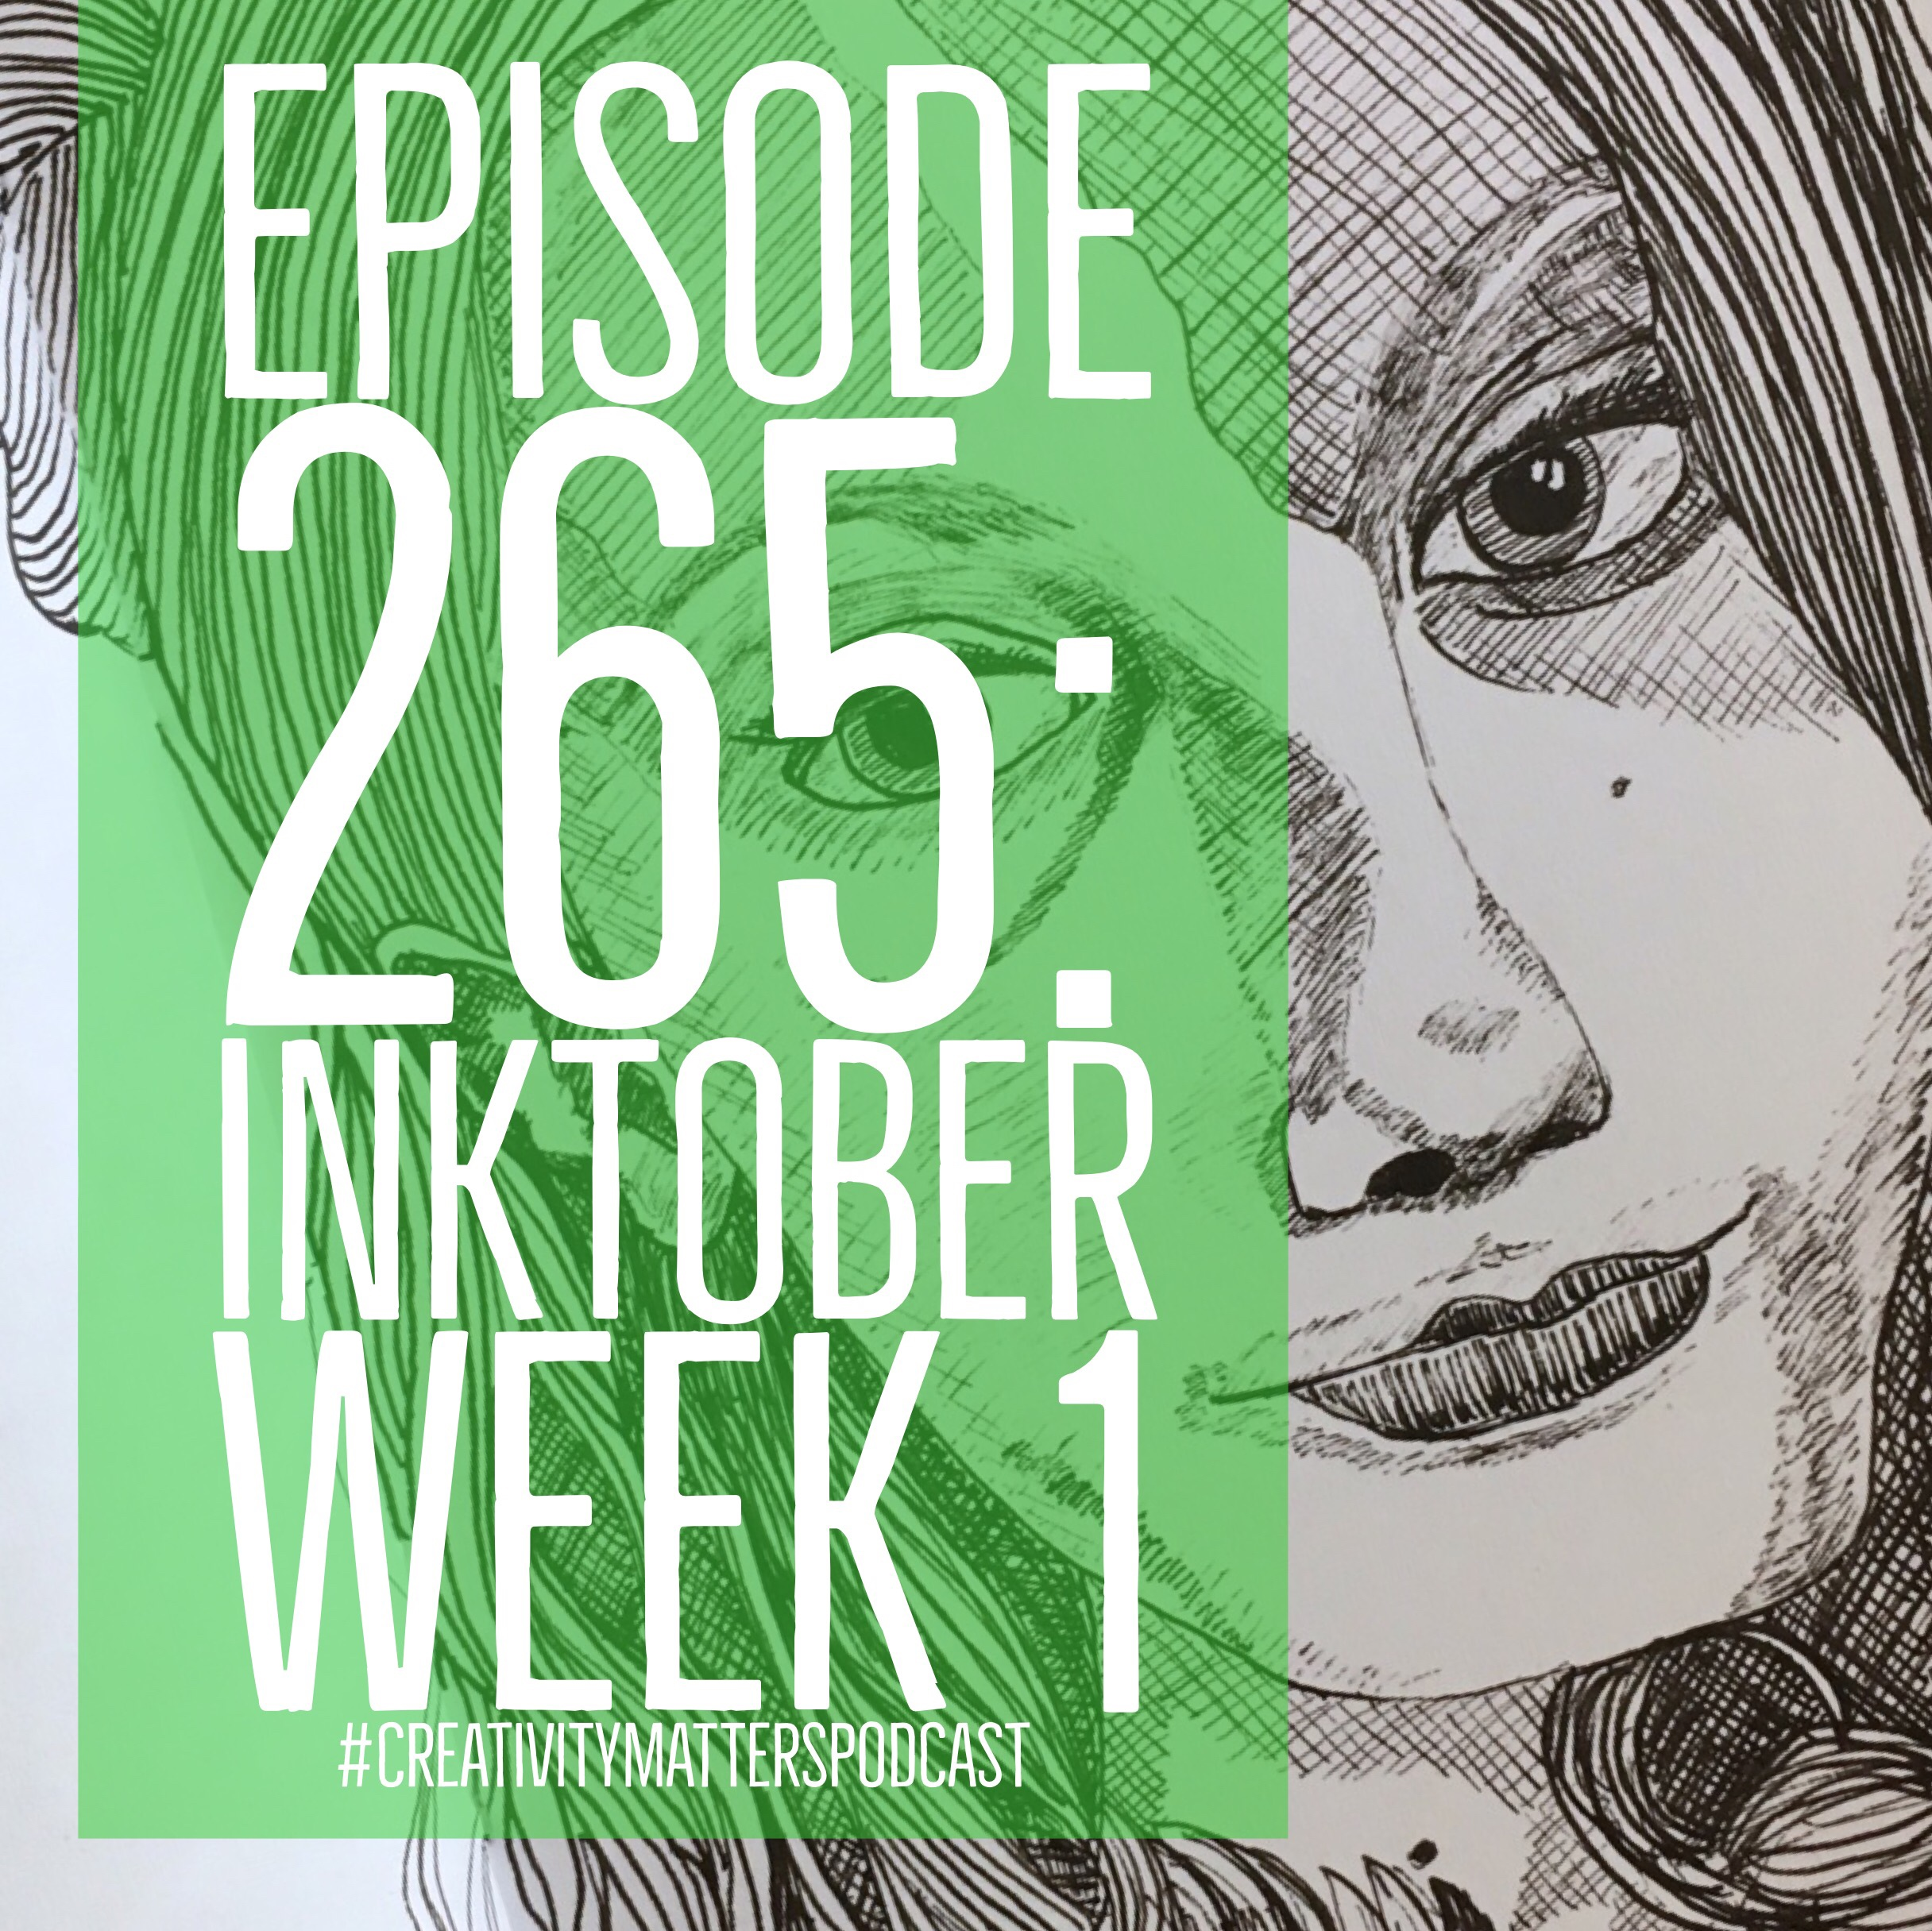 Episode 265: Inktober Week 1